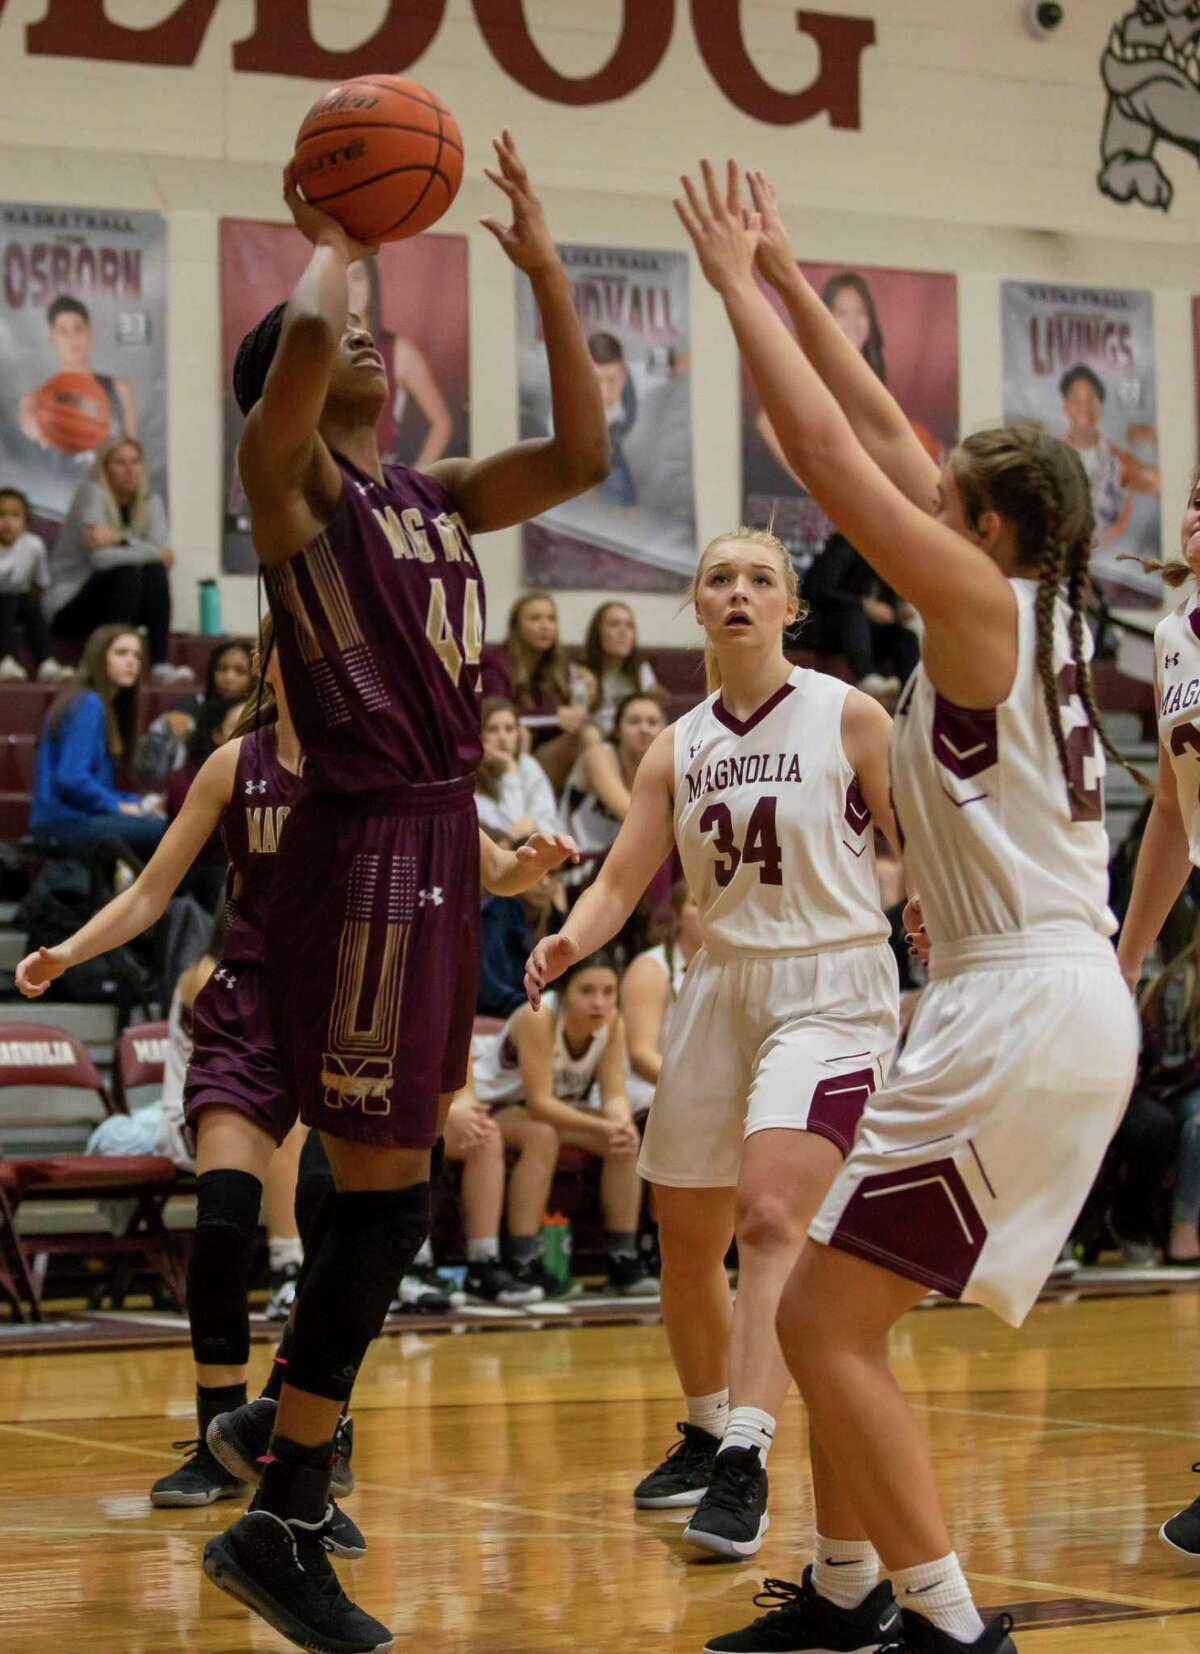 Magnolia West forward Kamryn Jones (44) shoots for the basket through Magnolia guard Audrey Andrews (23) and Magnolia point forward Sophie Christiansen (34) in a District 19-5A girls basketball game in Magnolia on Tuesday, Jan. 7, 2020.